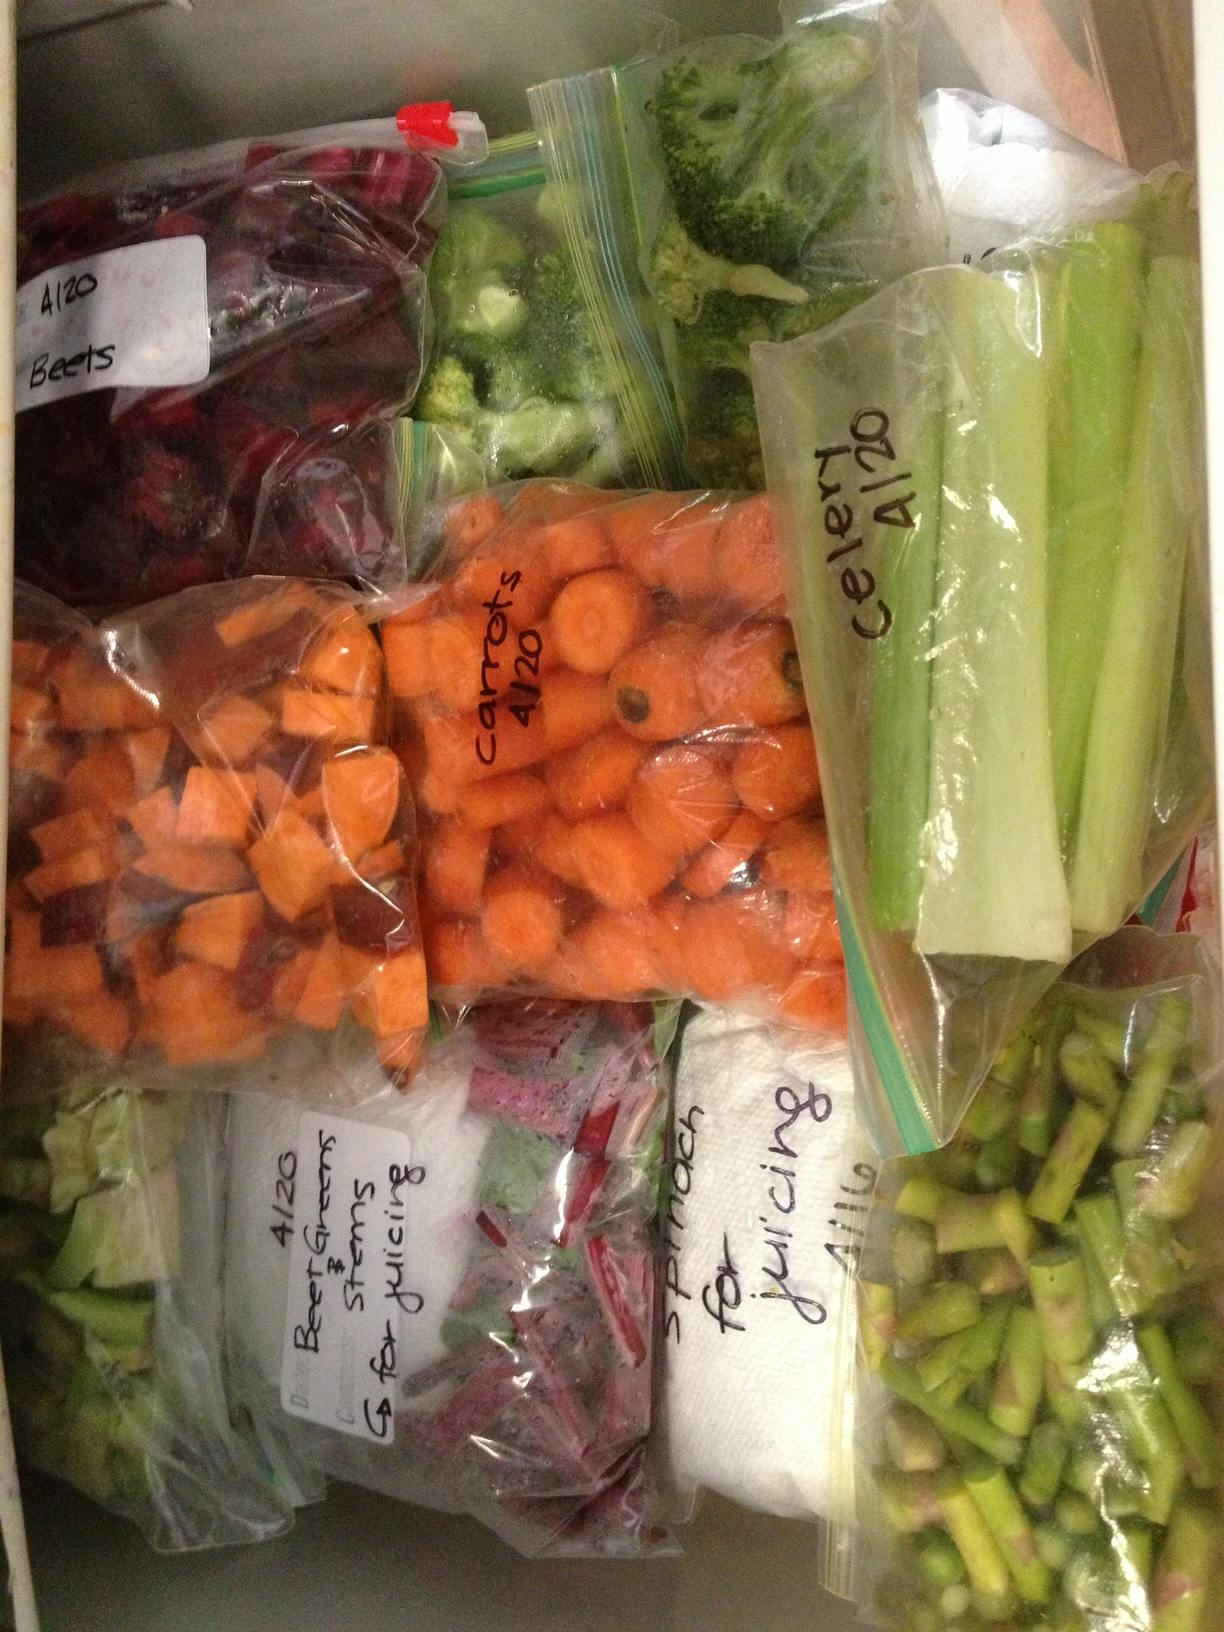 Keeping Produce Fresh – How to Store Produce to Keep it Fresher, Longer!